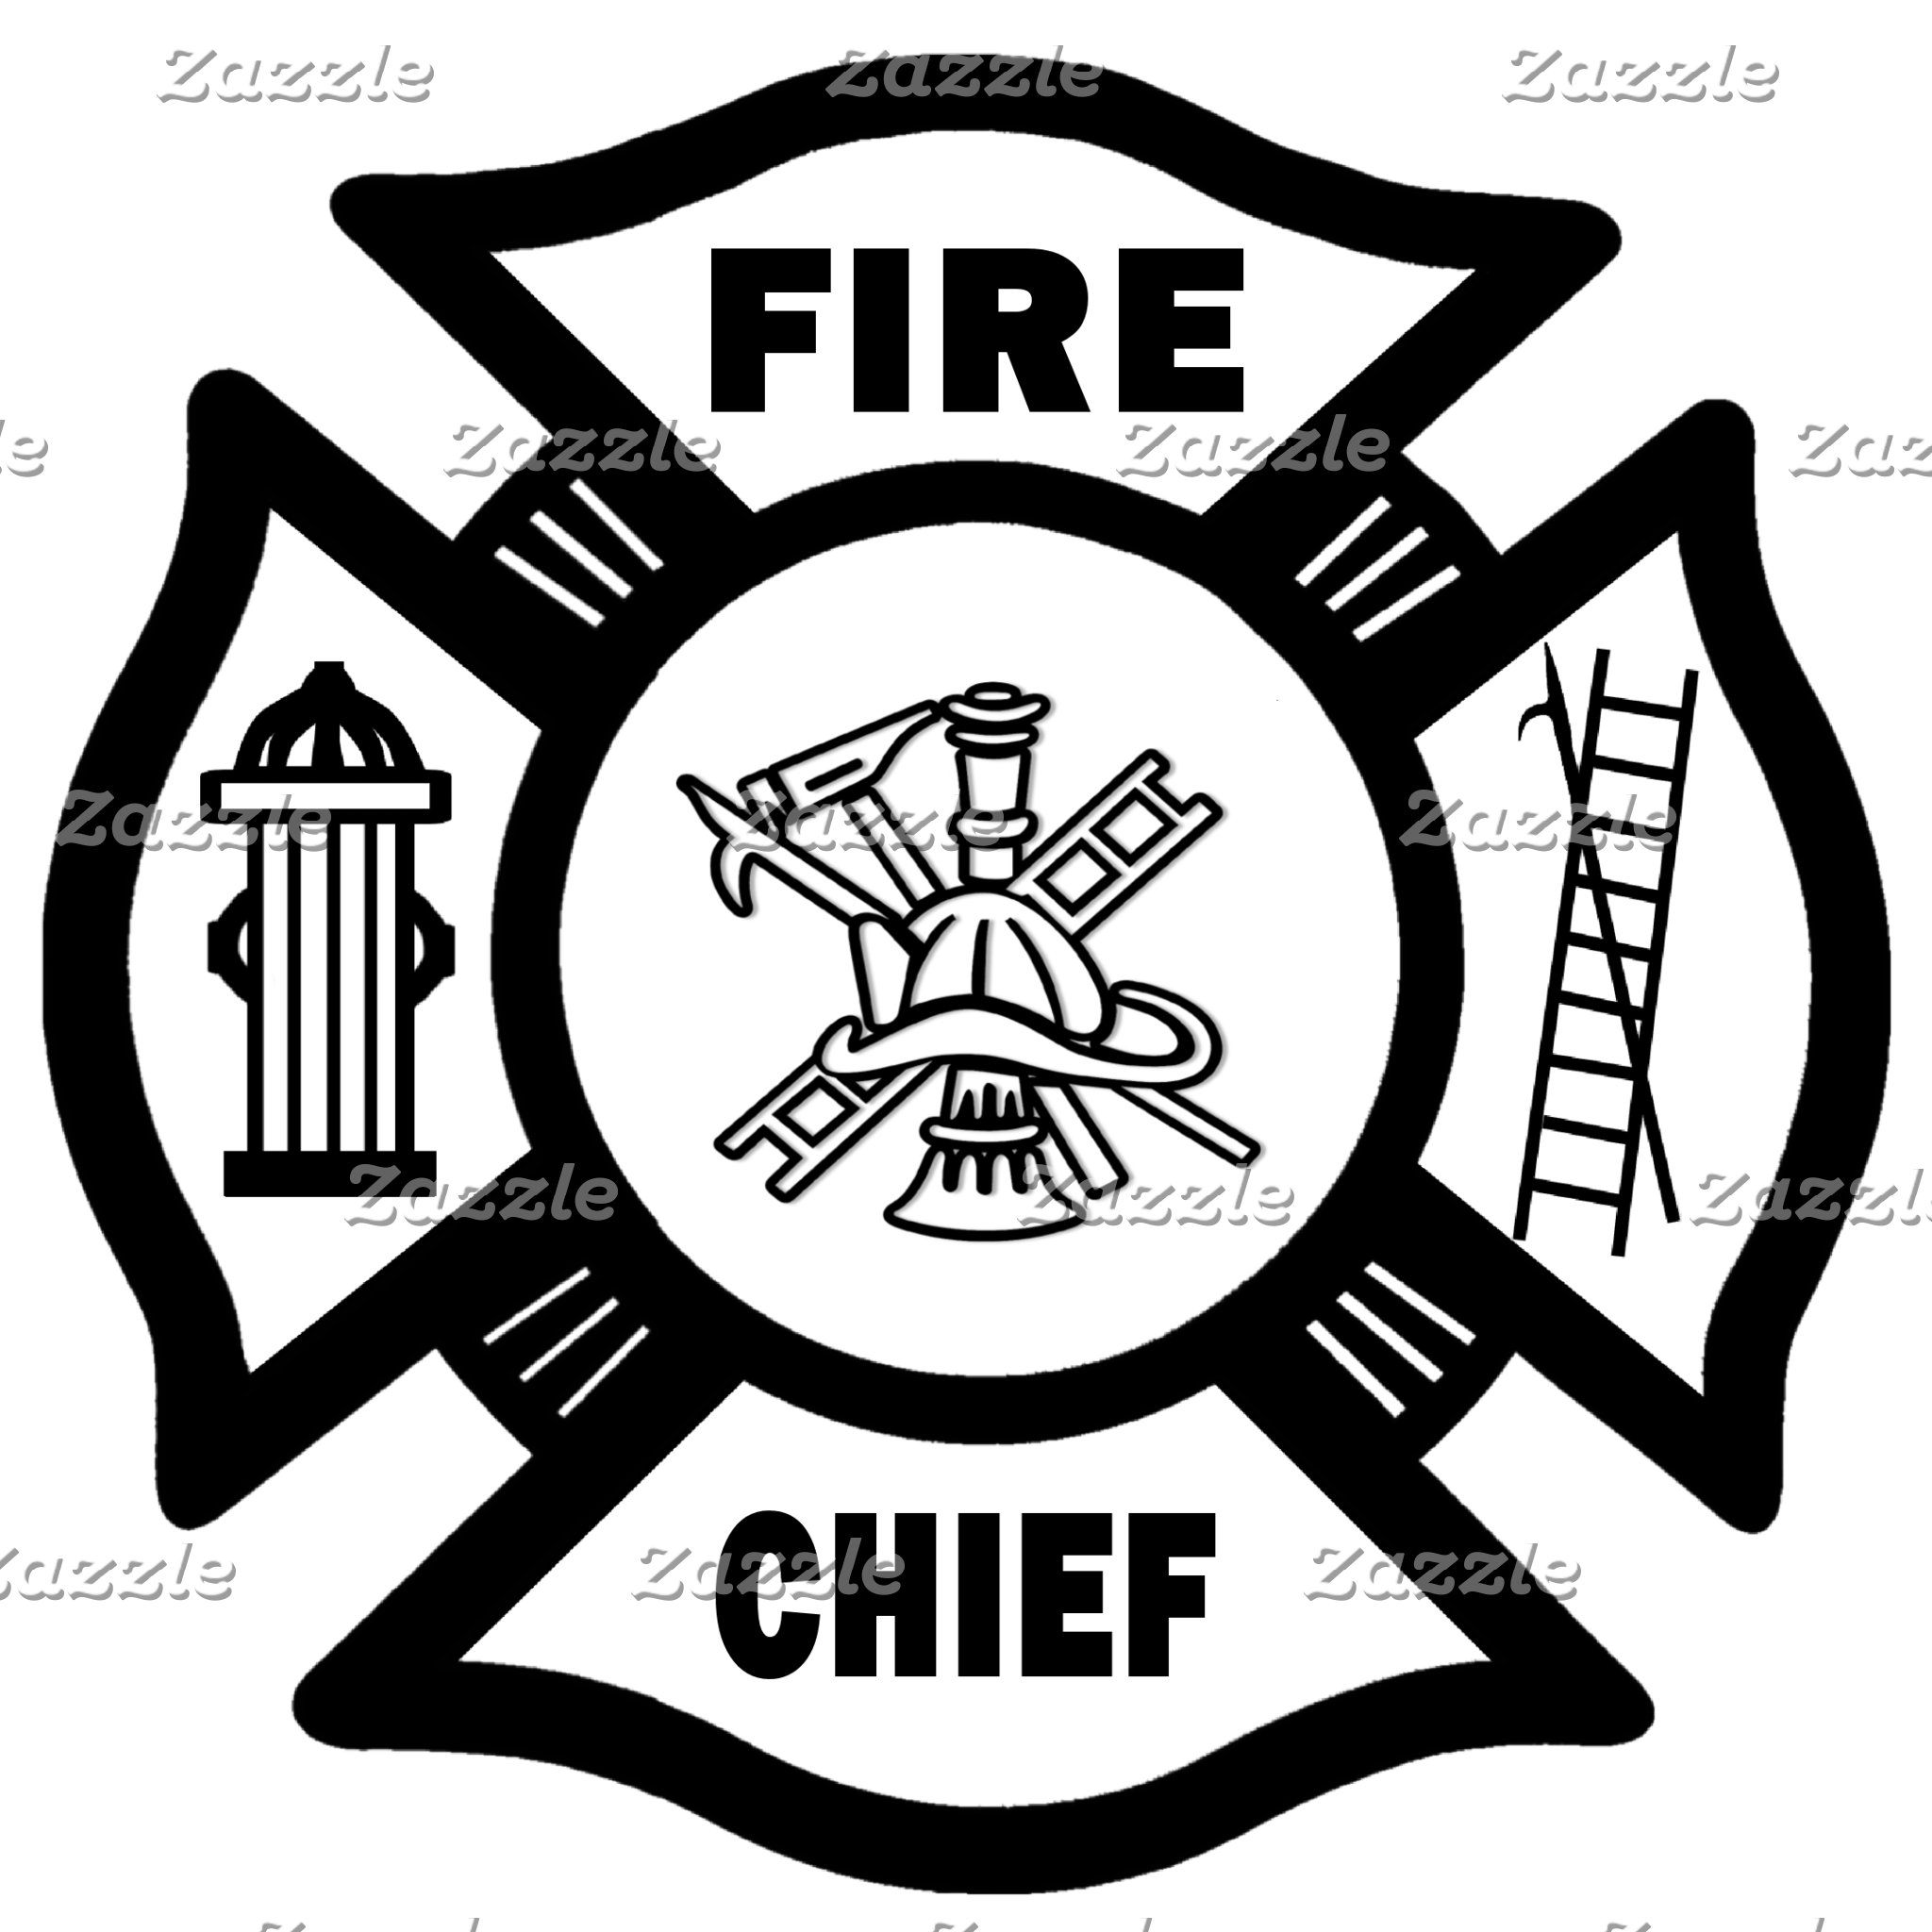 Fire Chief Maltese Cross